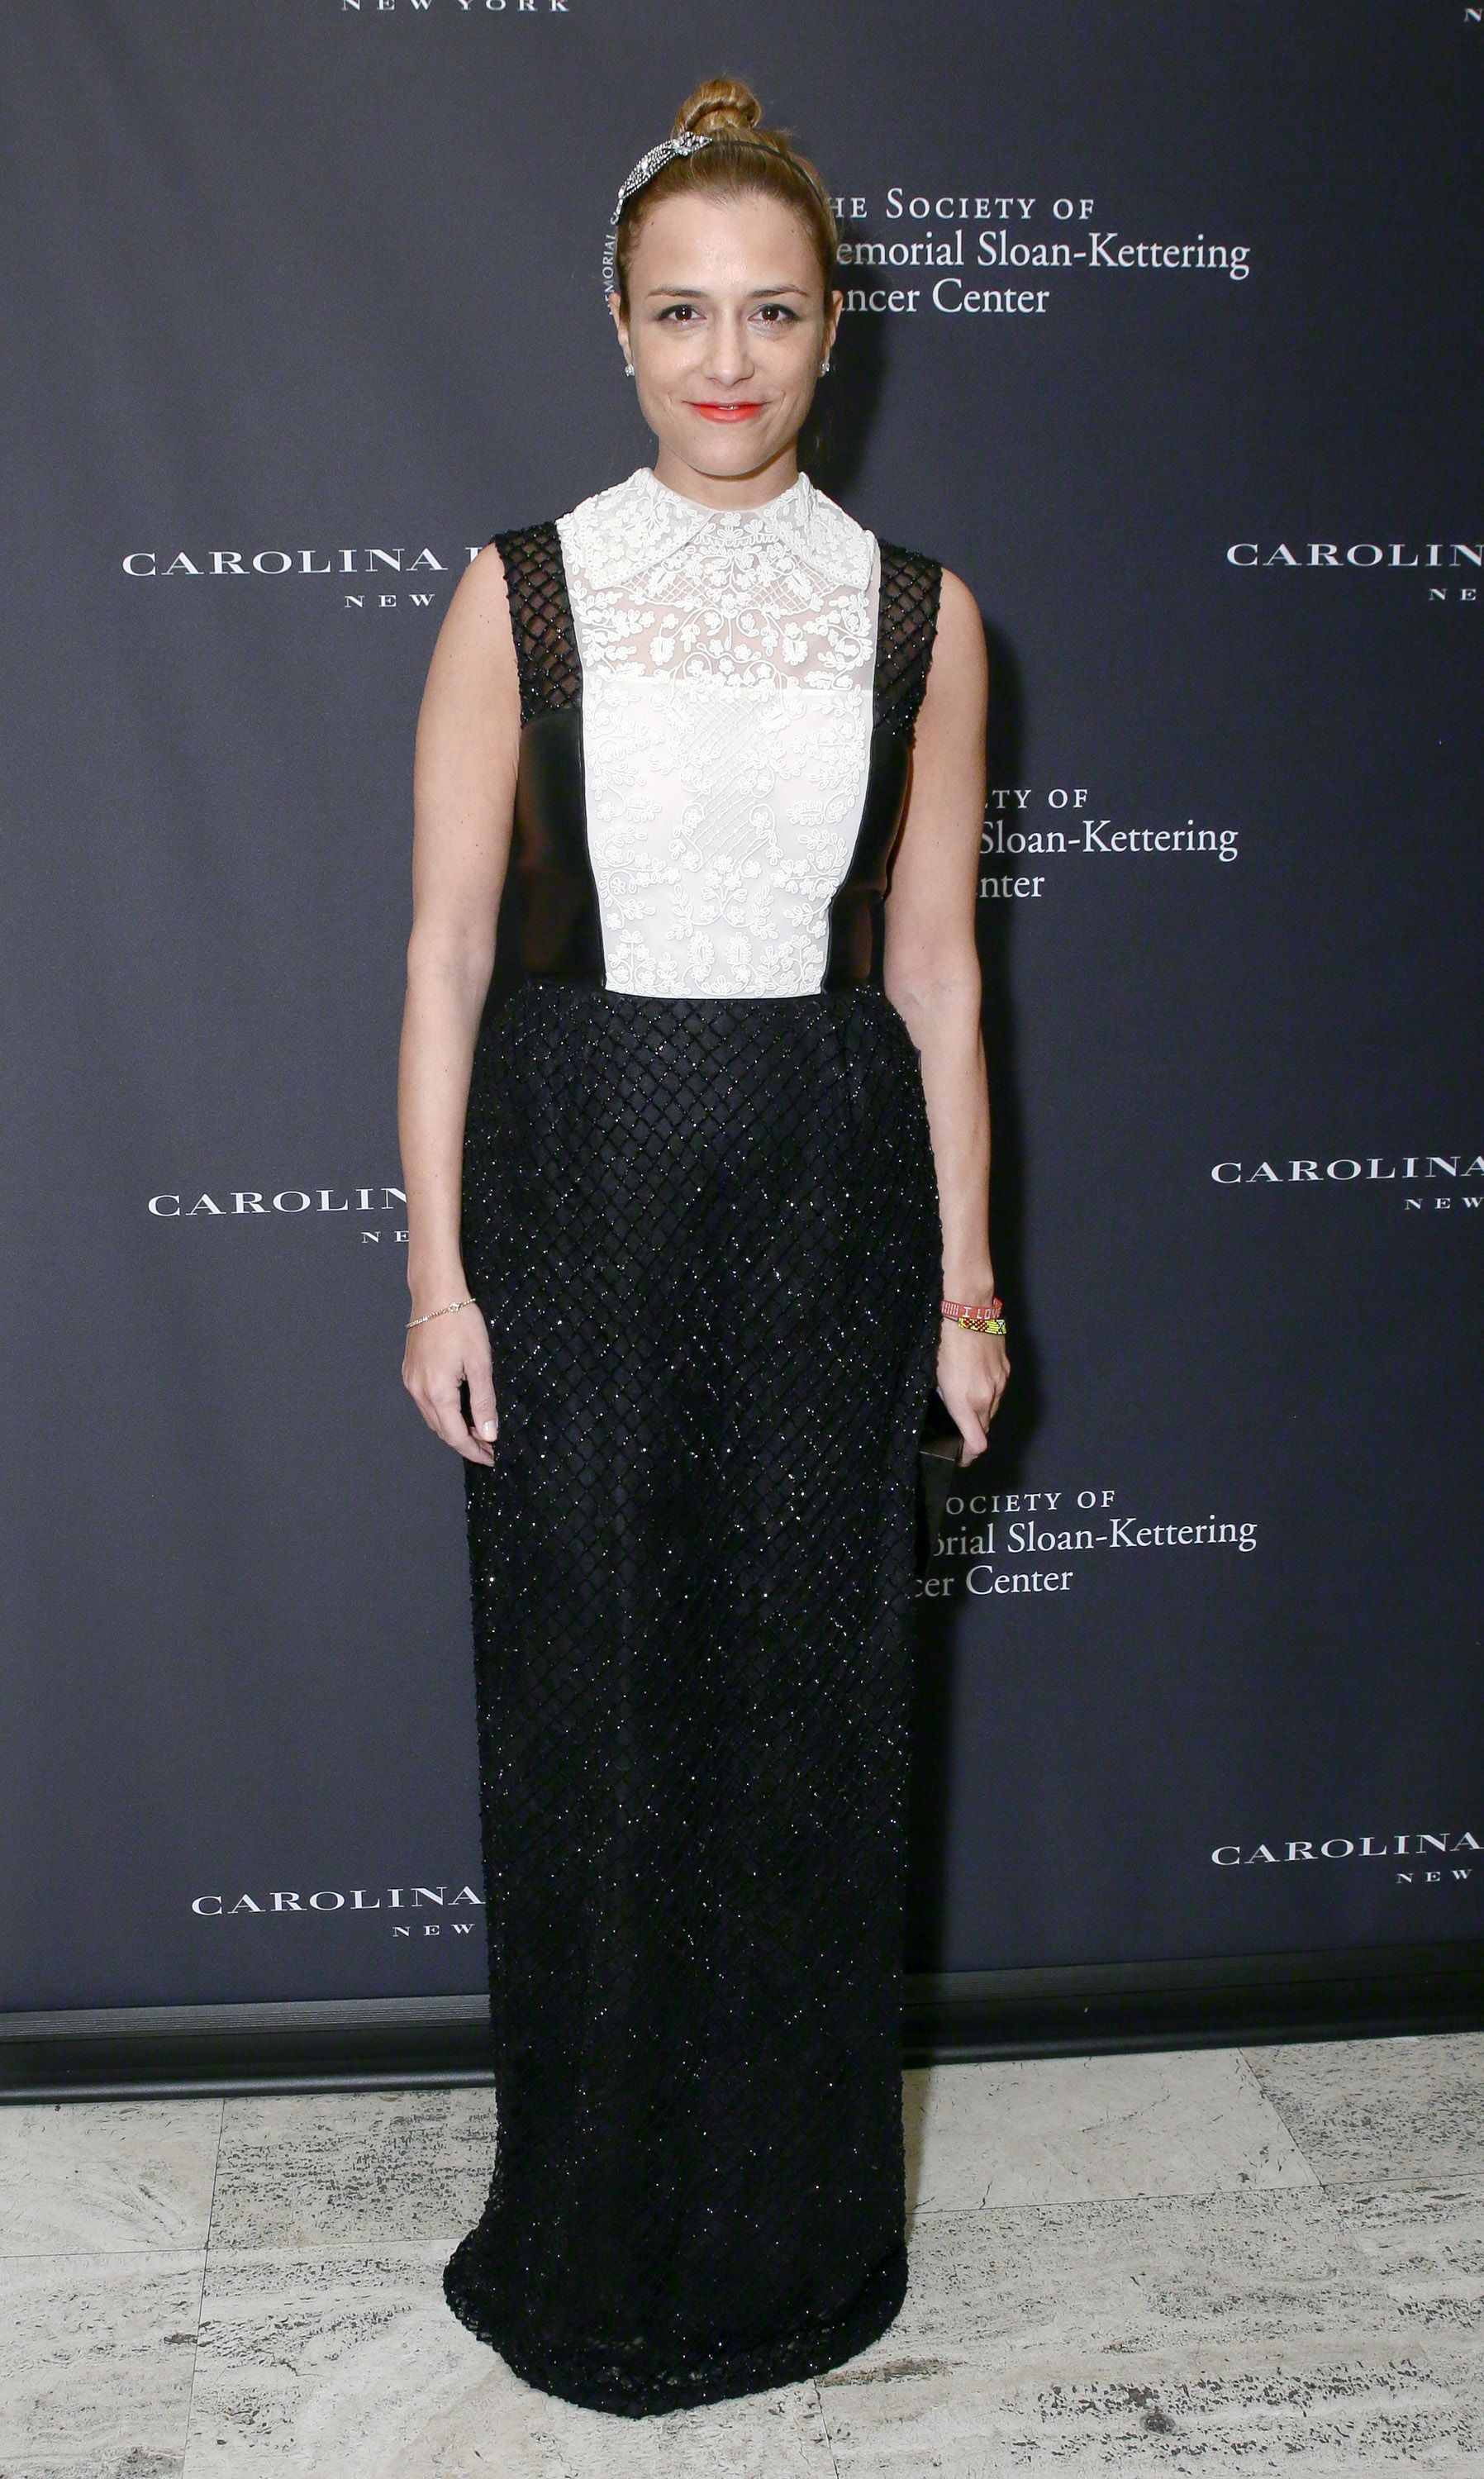 Charlotte Ronson wore a Valentino gown from the Fall/Winter 2013 Collection